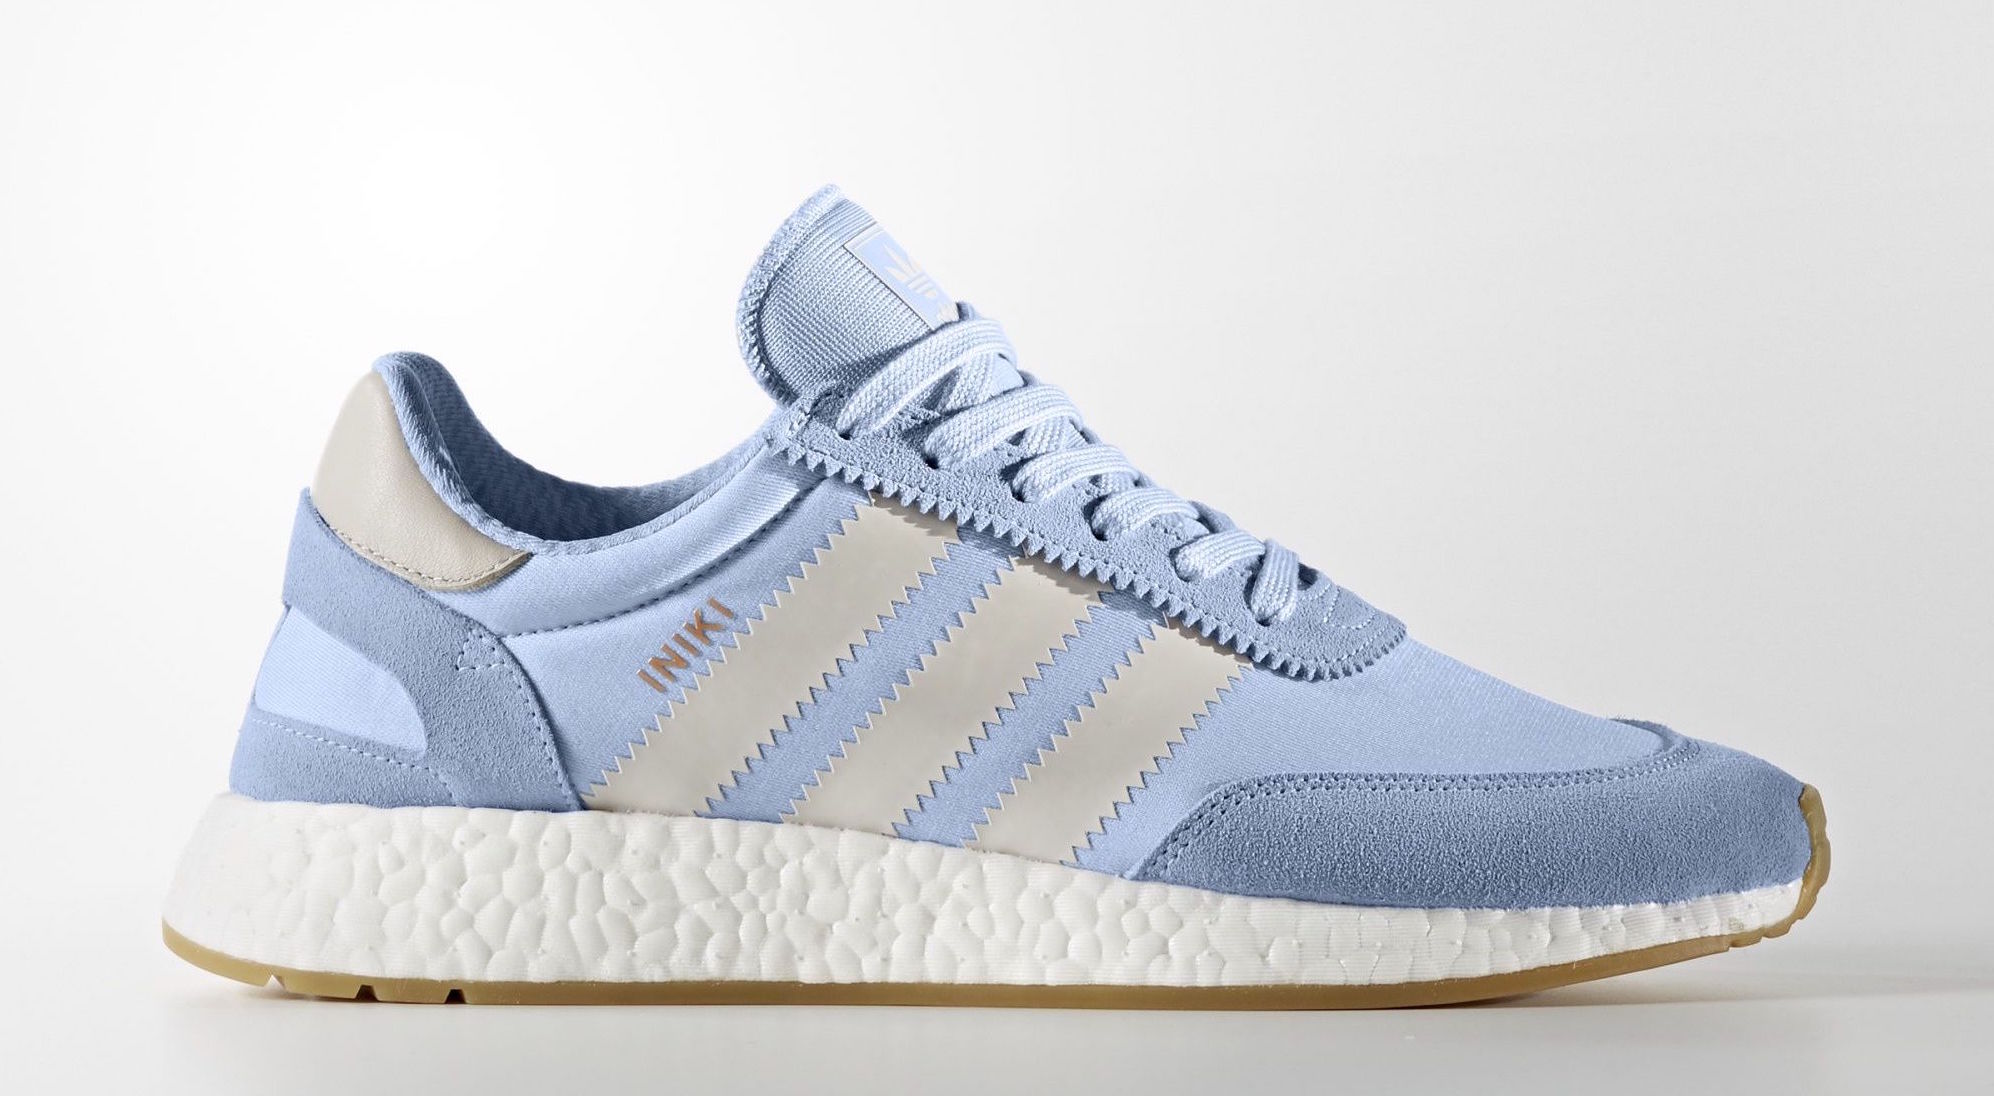 iniki-runner-adidas-originals-folkr-sneakers-00